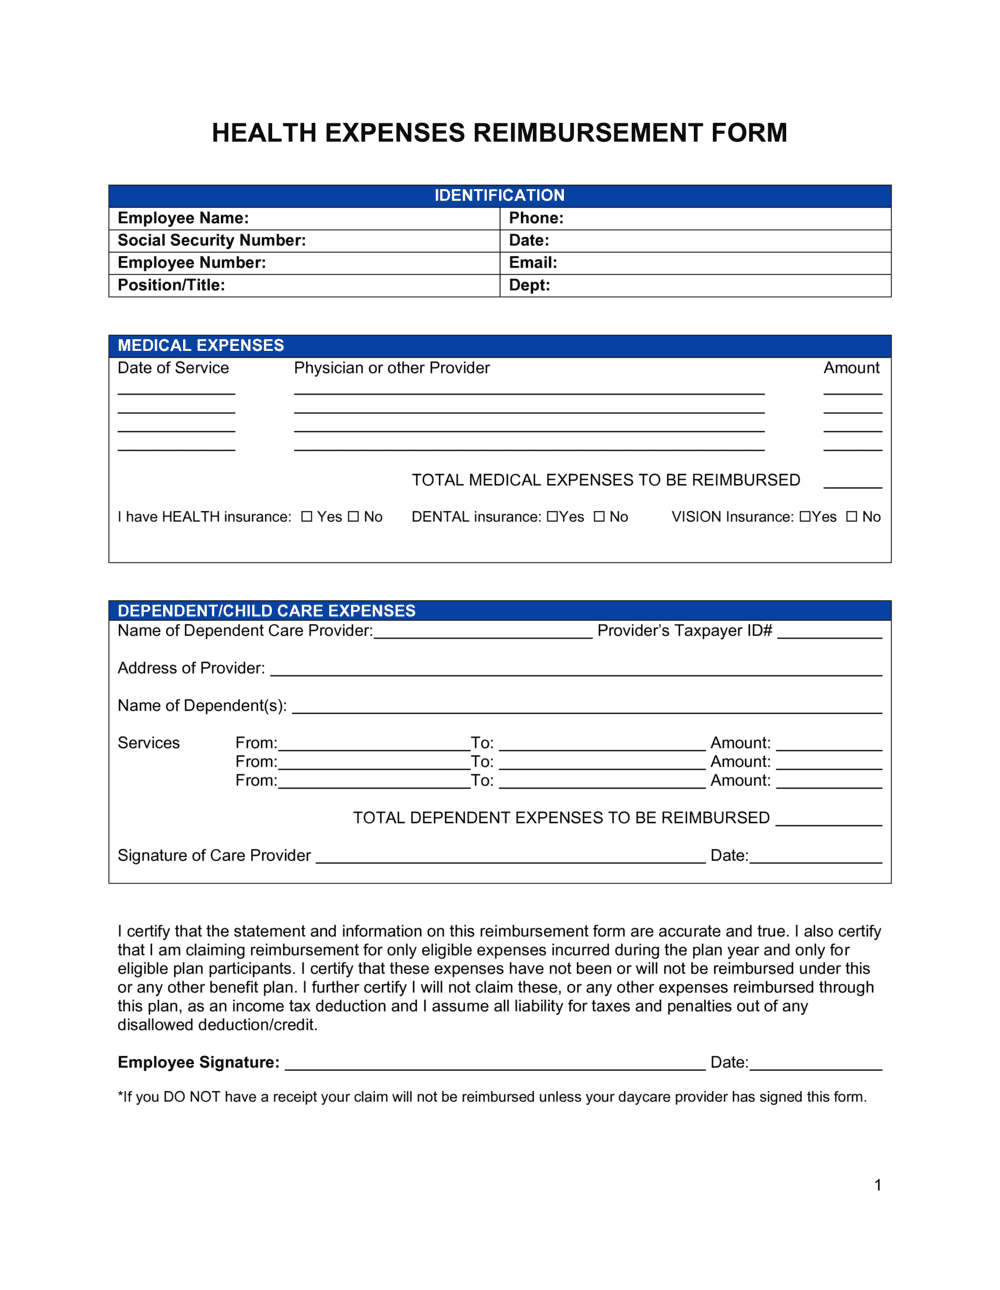 Reimbursement Form Medical Expenses Template By Business In A Box